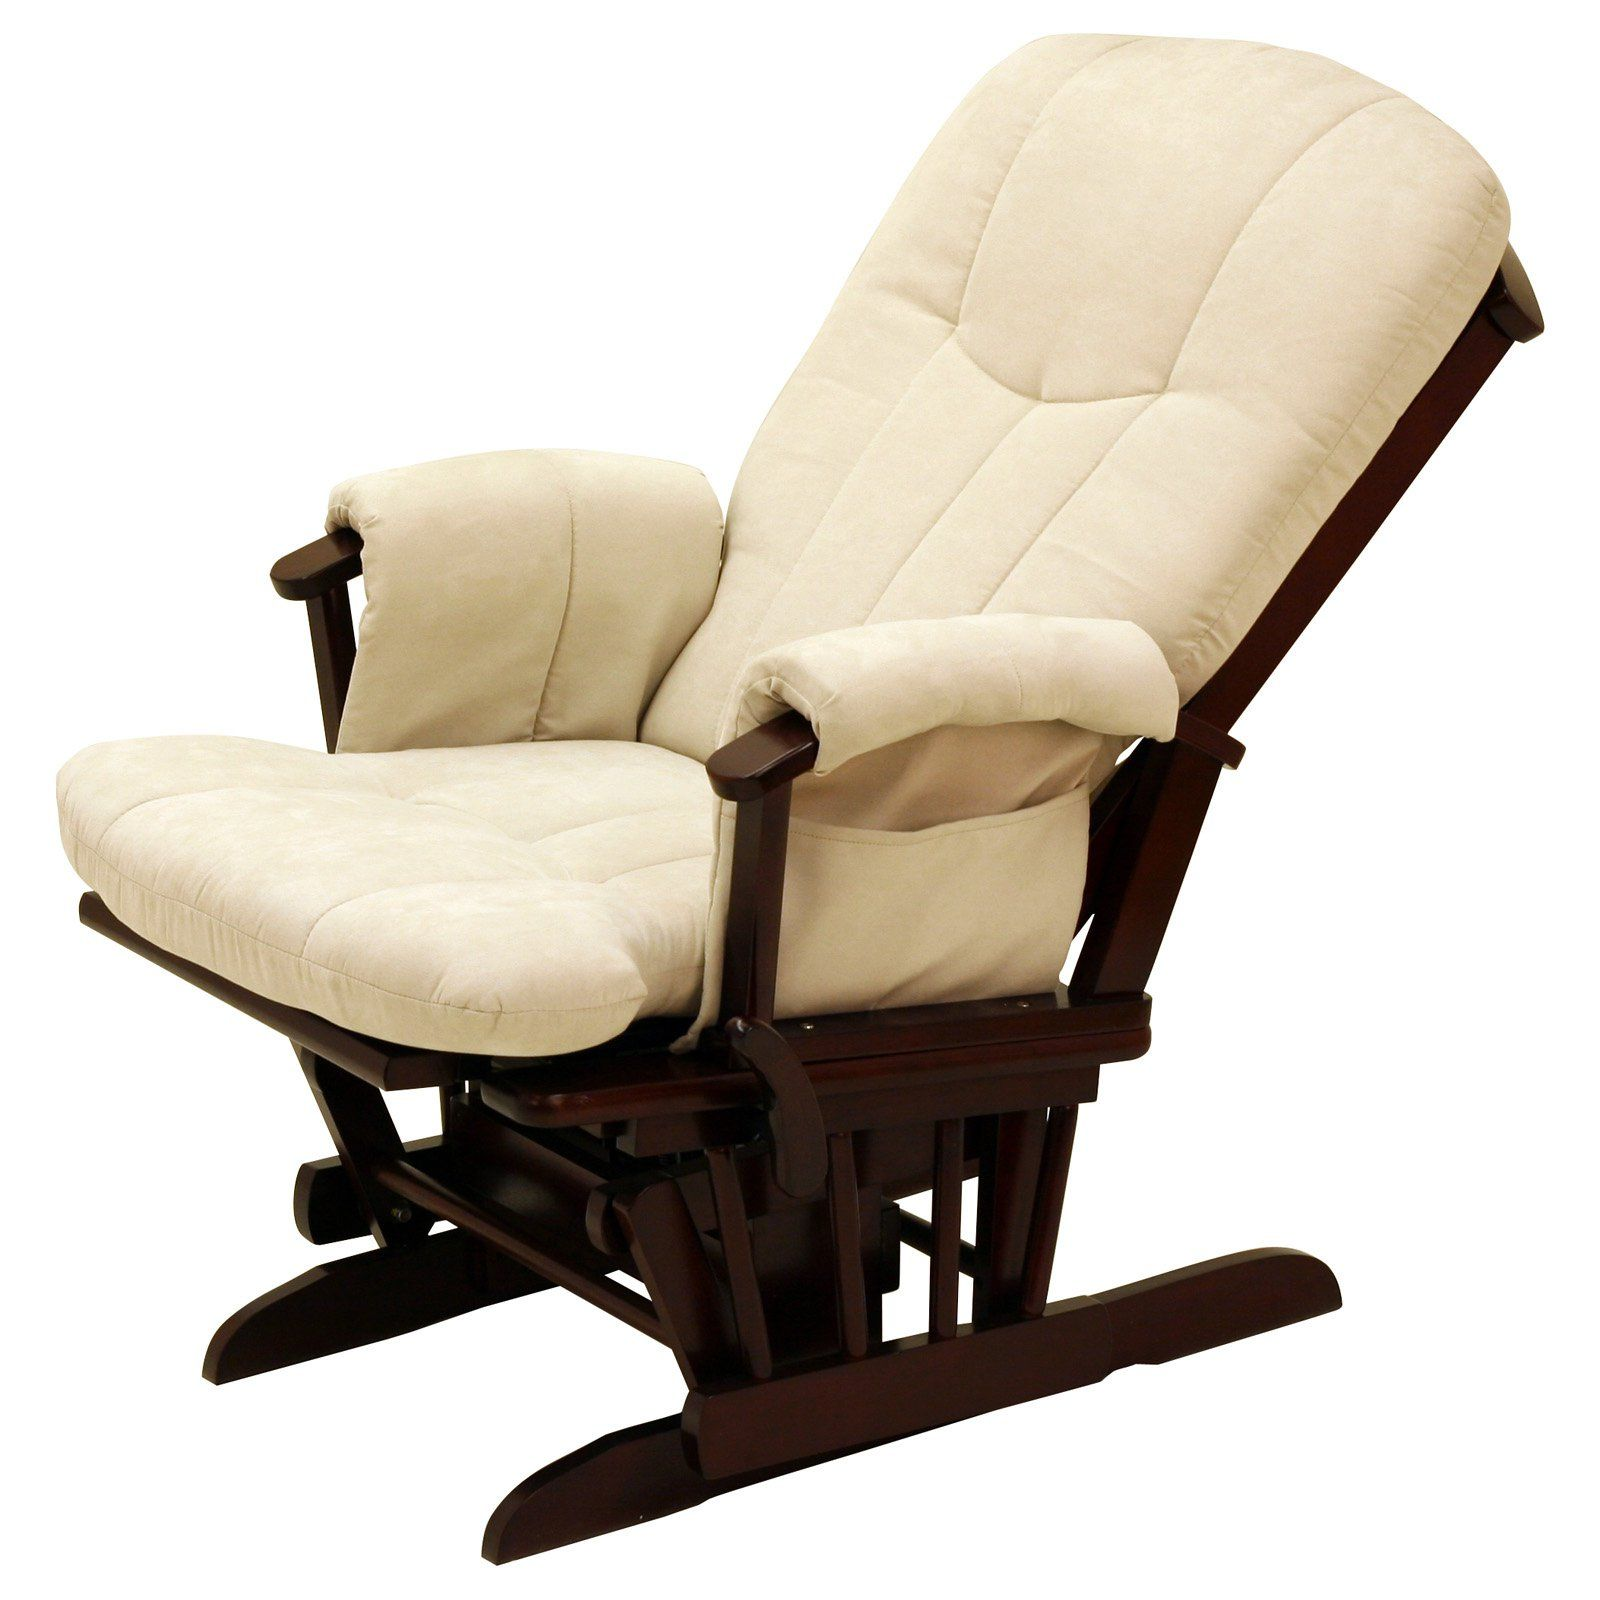 Rocking Recliner Chair For Nursery 50 Glider Canada Best Paint Wood Furniture Check More At Http